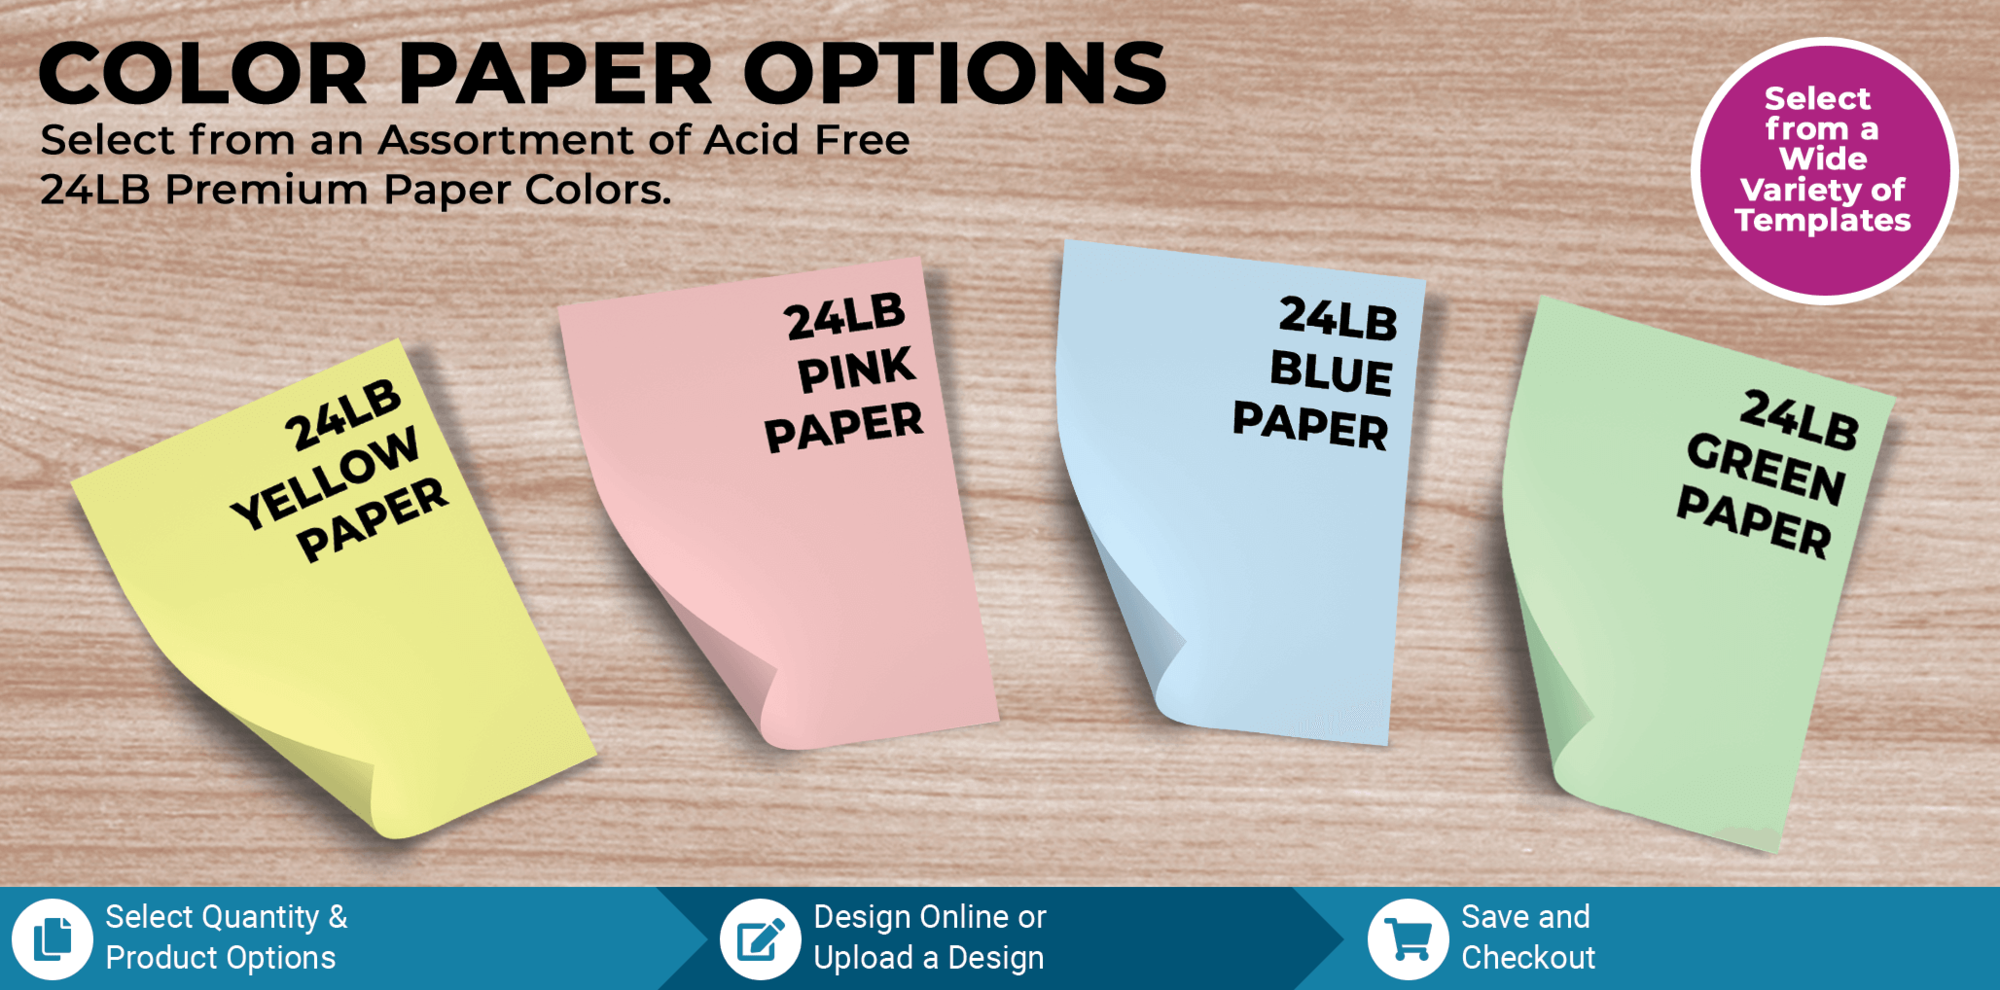 https://printpps.com/images/products_gallery_images/Custom-Sticky-Notes_Product-Page-Banner-239.png